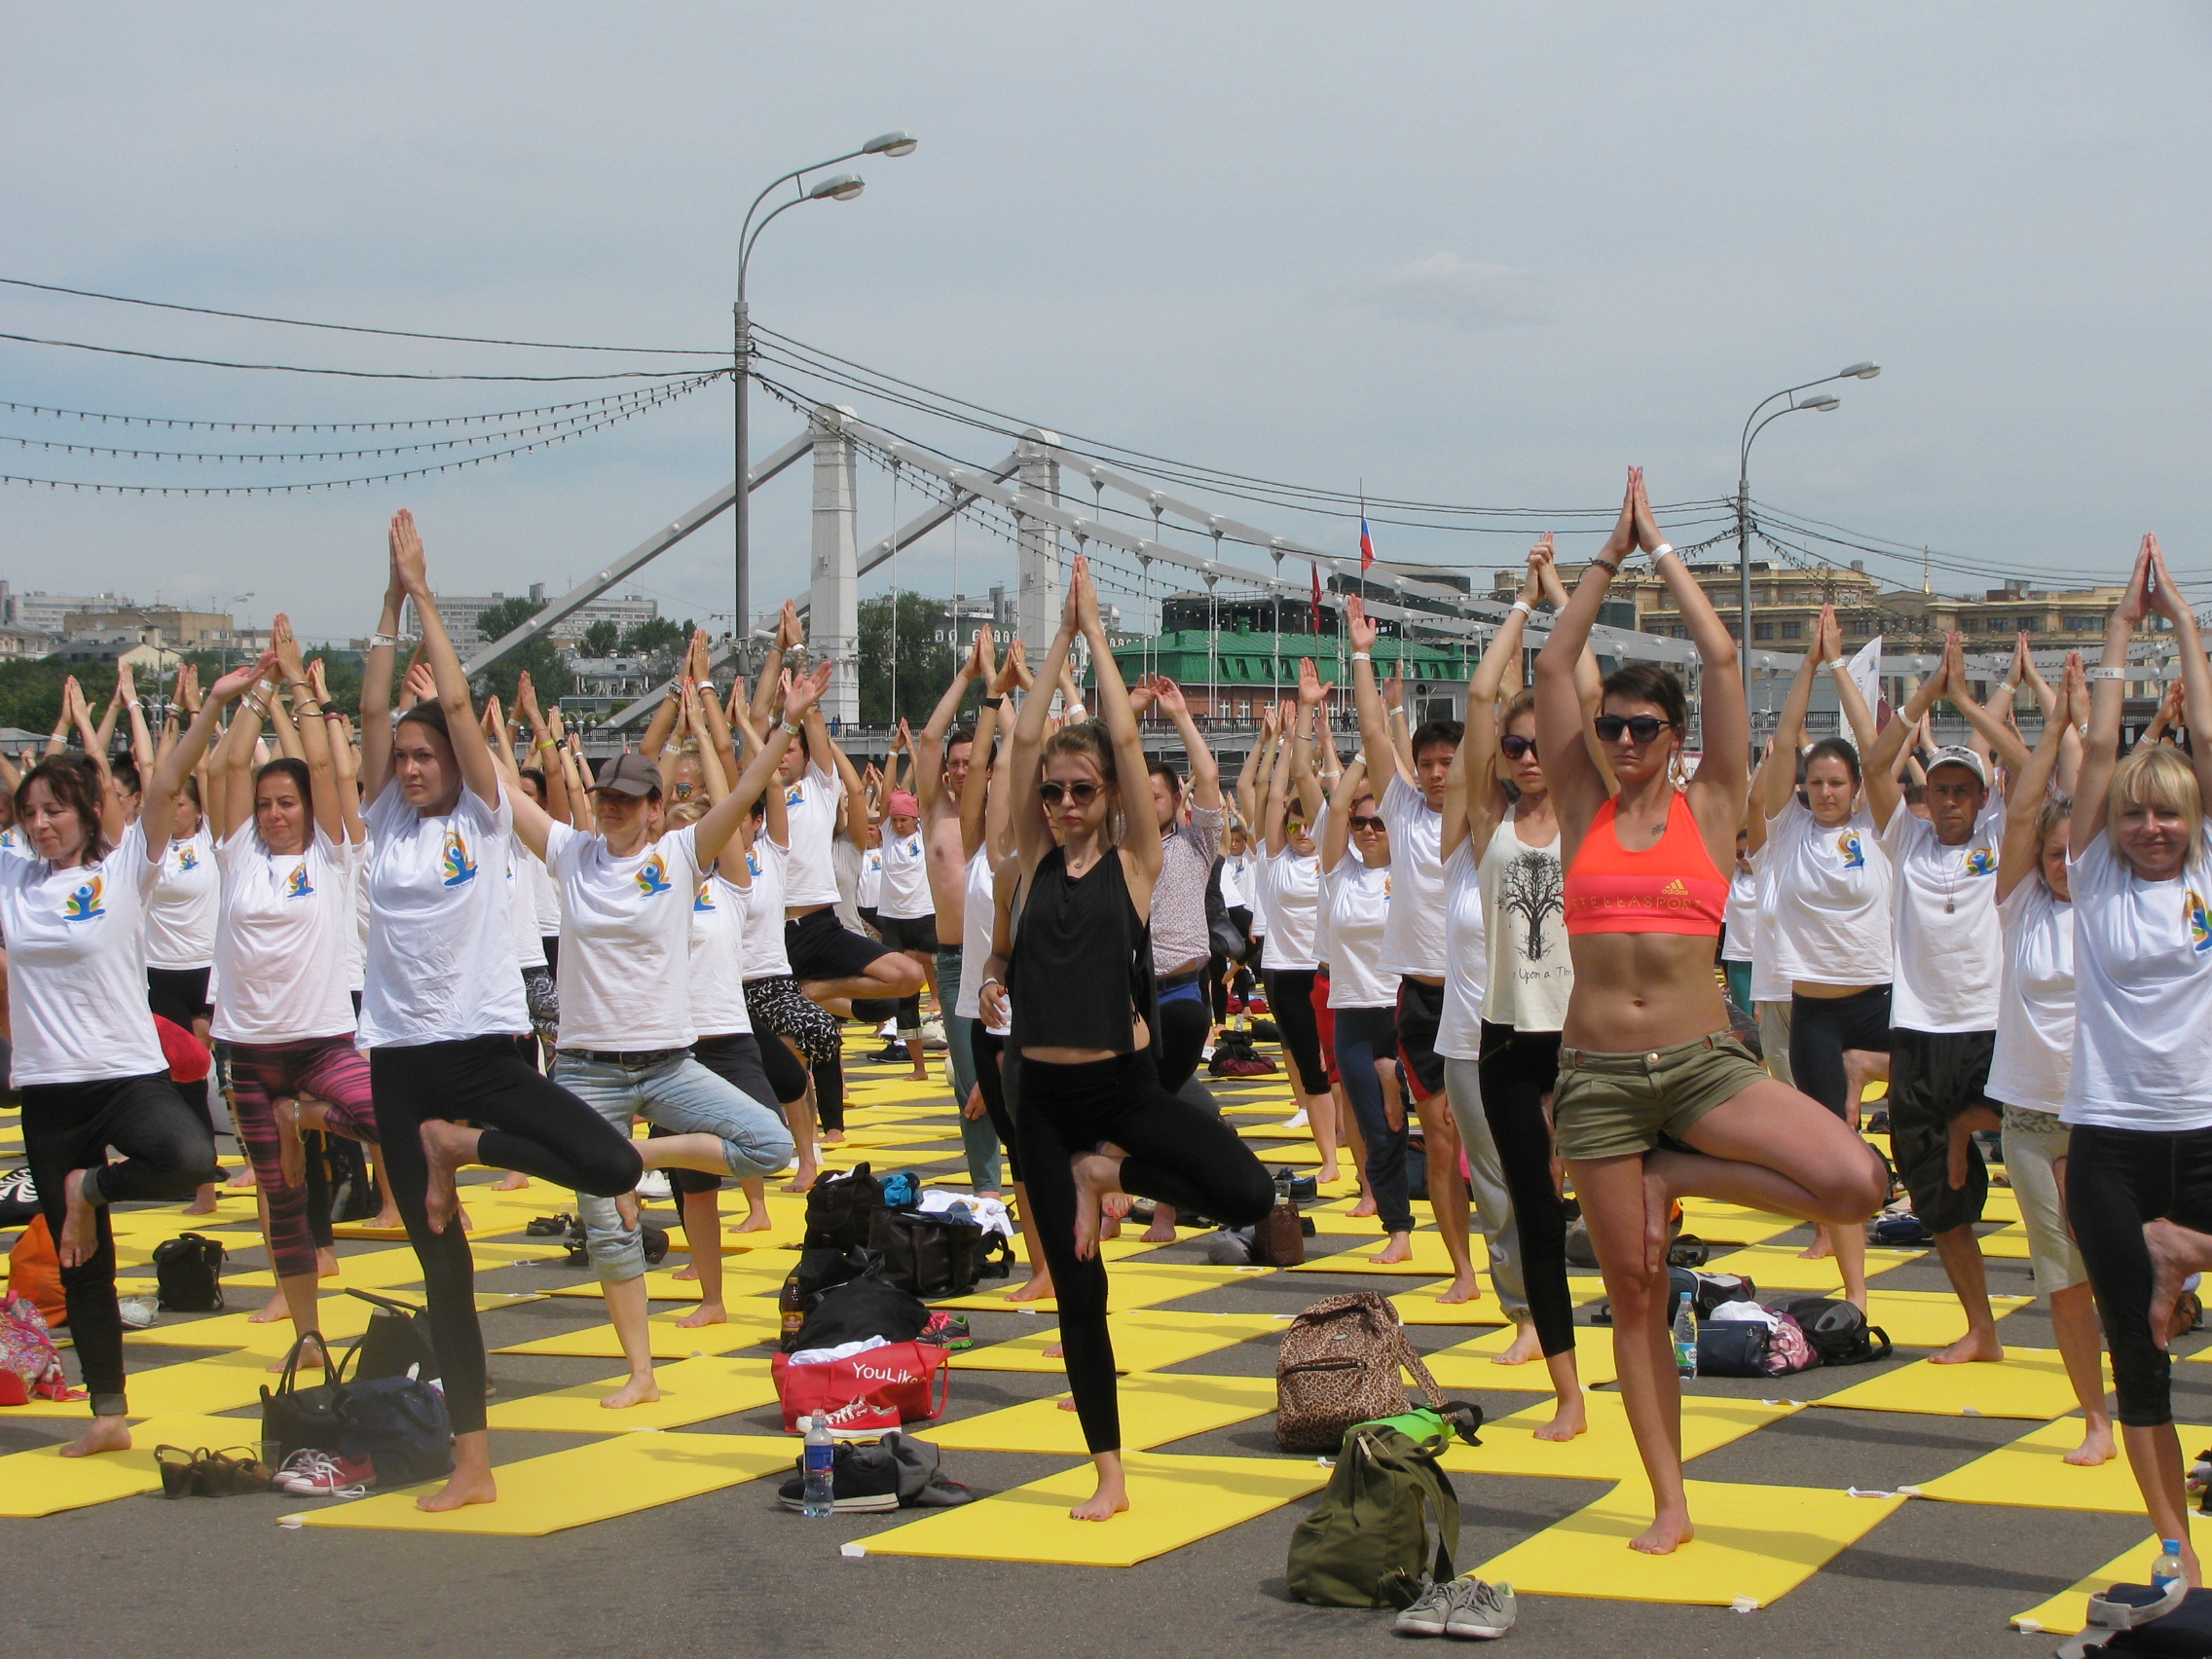 For a long time yoga did not receive a wide response and support in Russia, but in recent years due to the growing interest in India, the situation has changed.